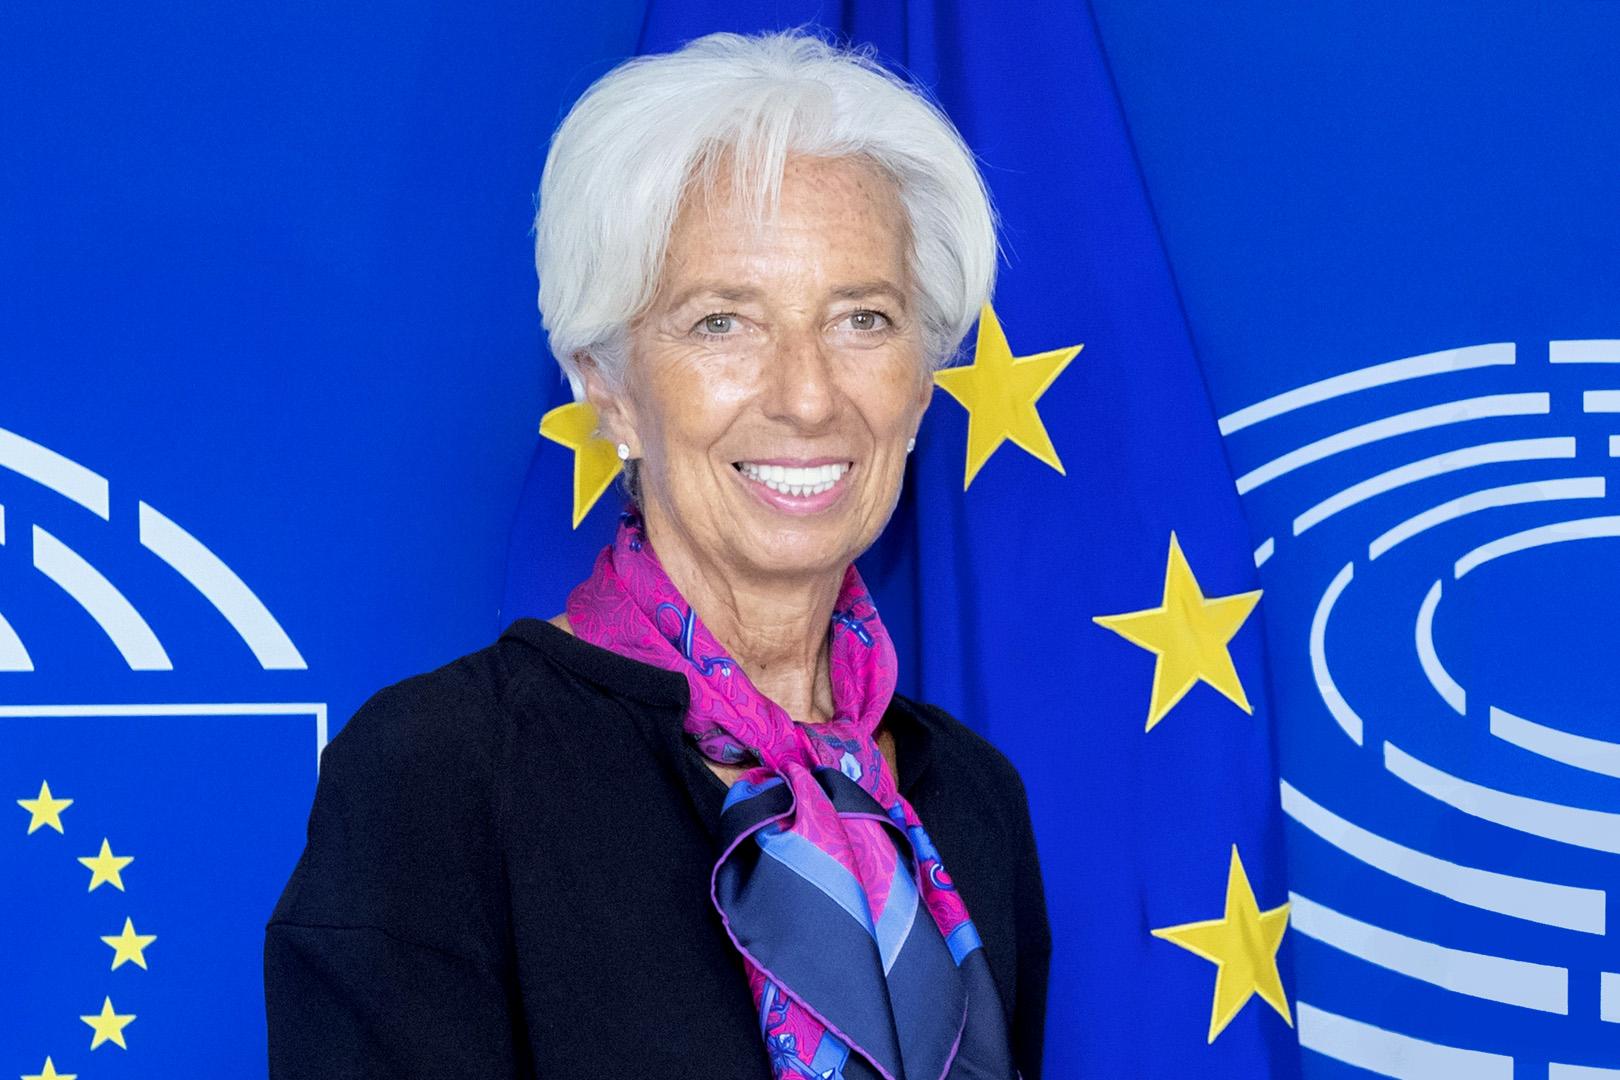 Christine Lagarde Drops a Crypto Bomb, Says ECB Interested in Stablecoins